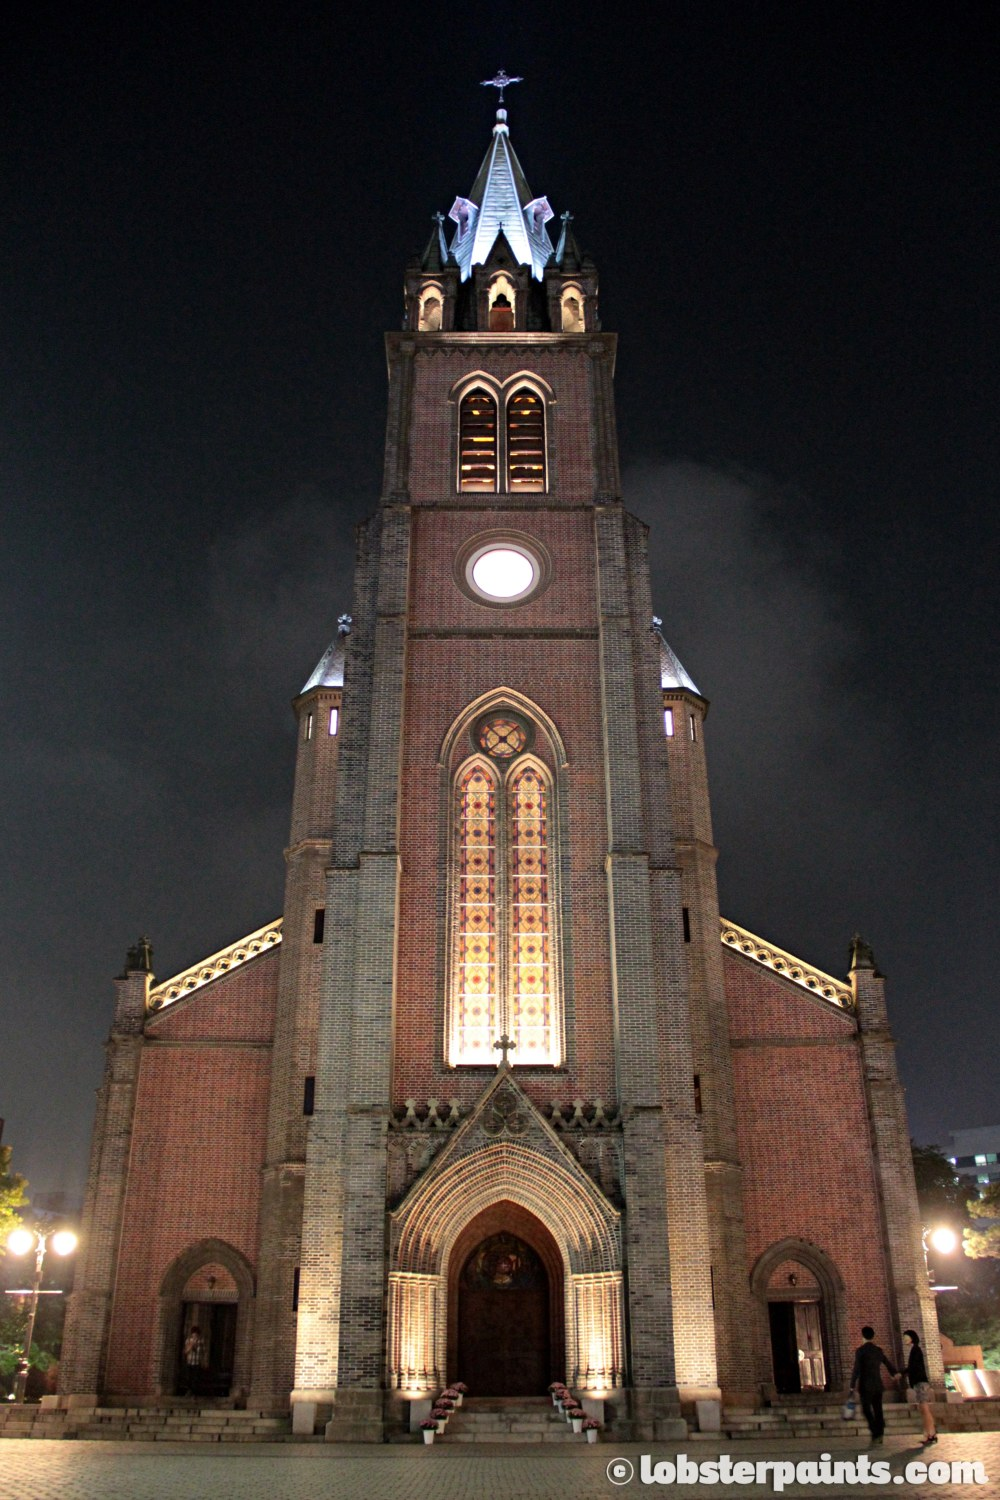 29 Sep 2014: Myeongdong Cathedral 명동성당 | Seoul, South Korea